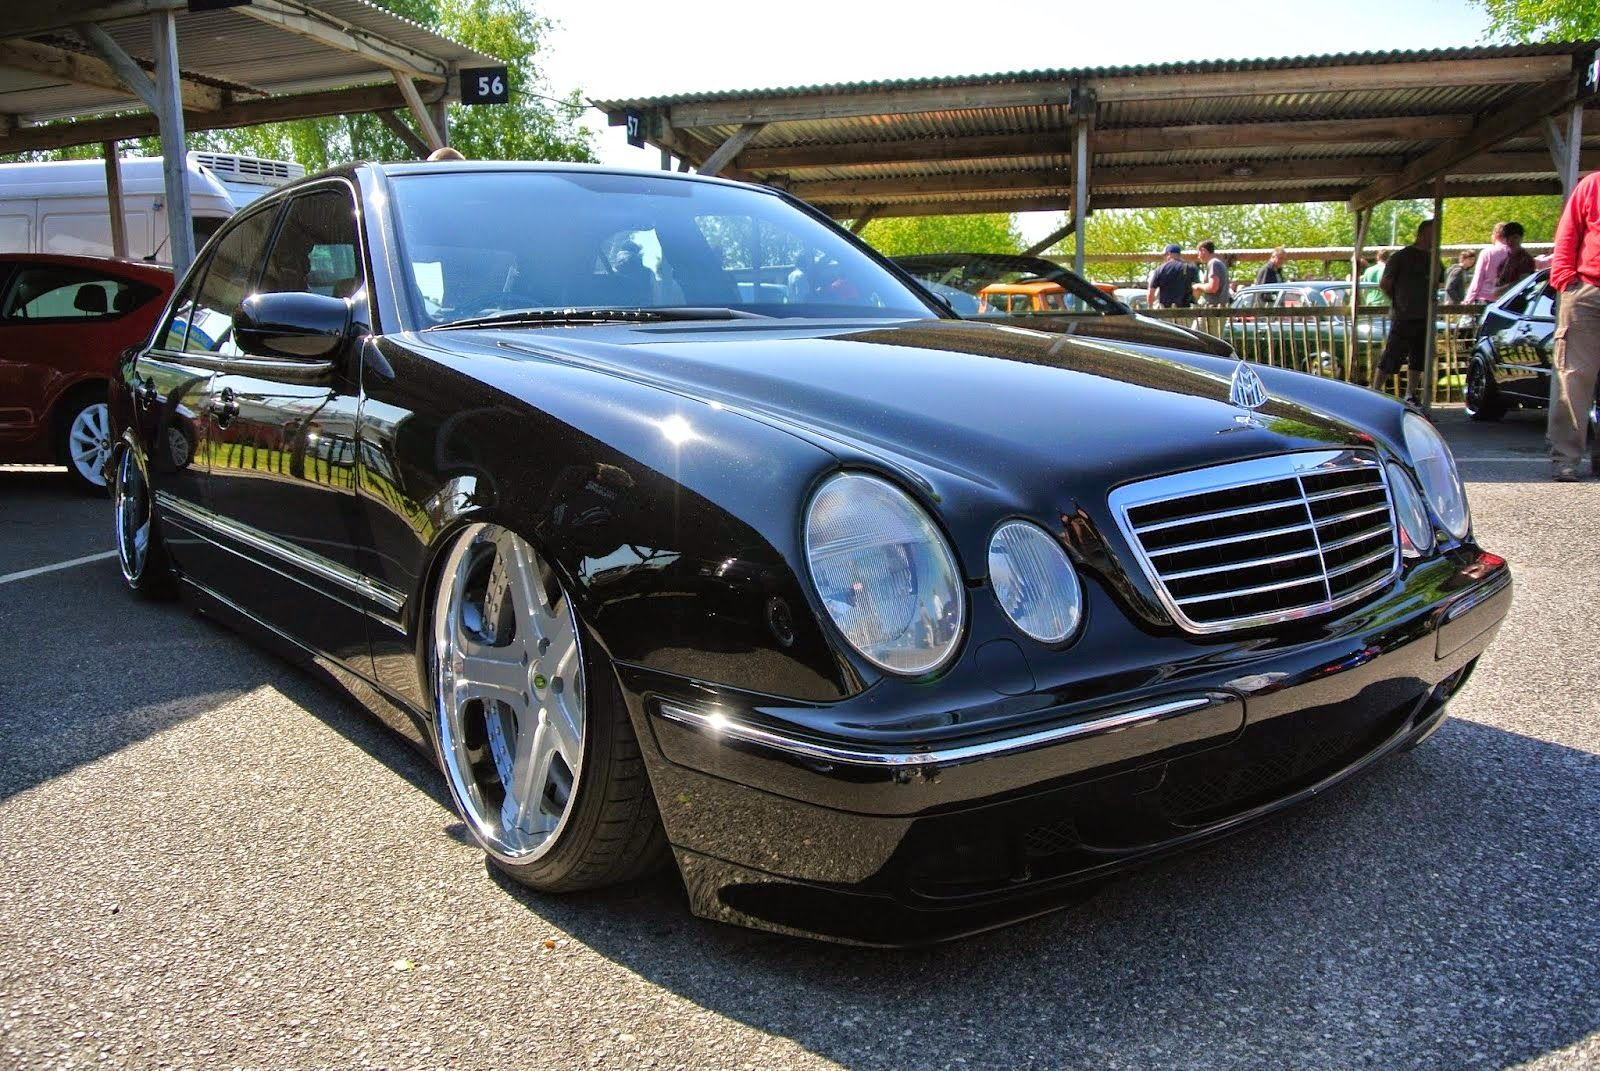 Mercedes w210 tuning 2 tuning cars - Mercedes Benz 210 Tuning